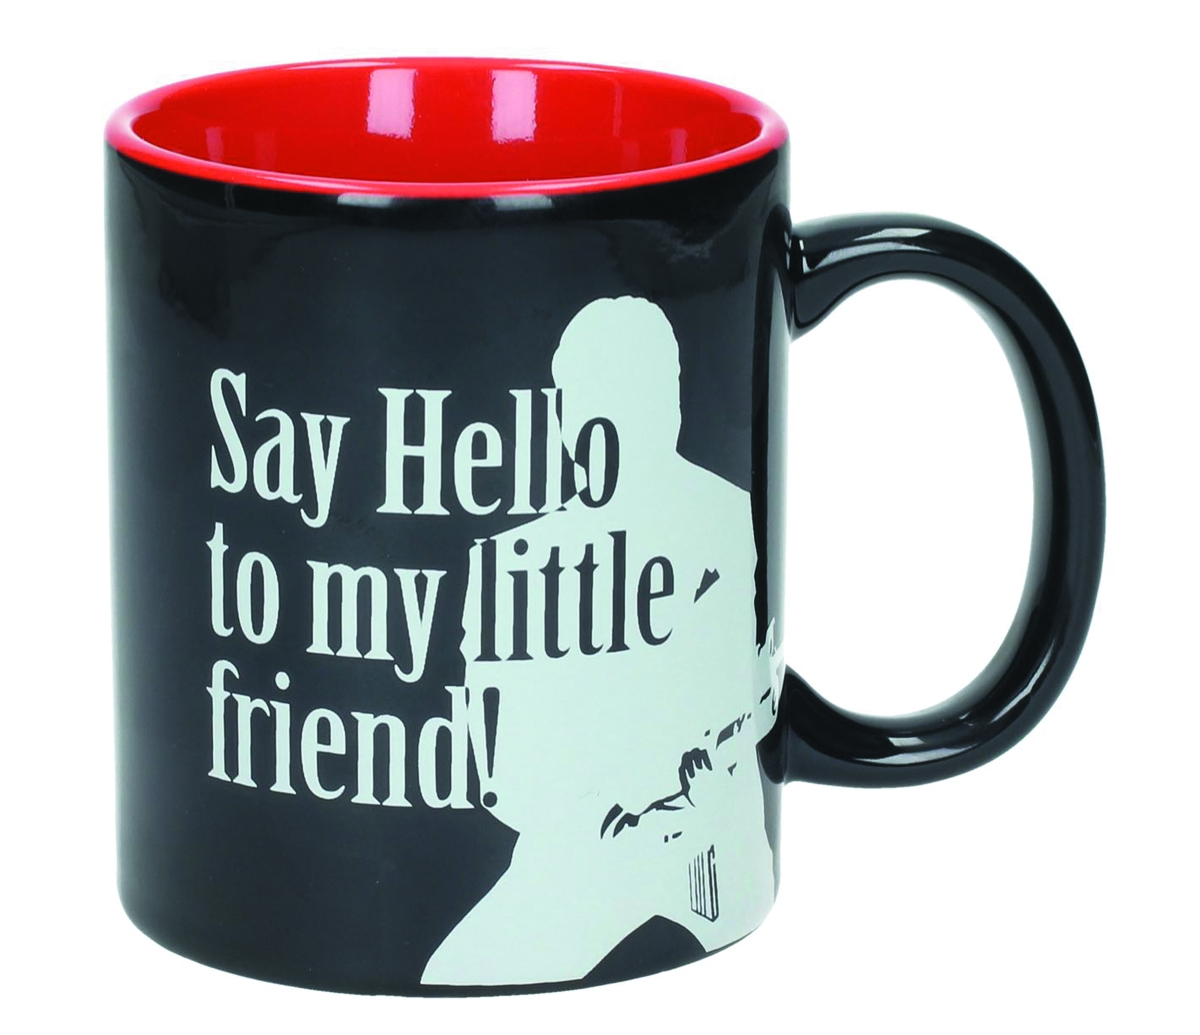 Scarface: Say Hello to my little friend! (Ceramic Mug)